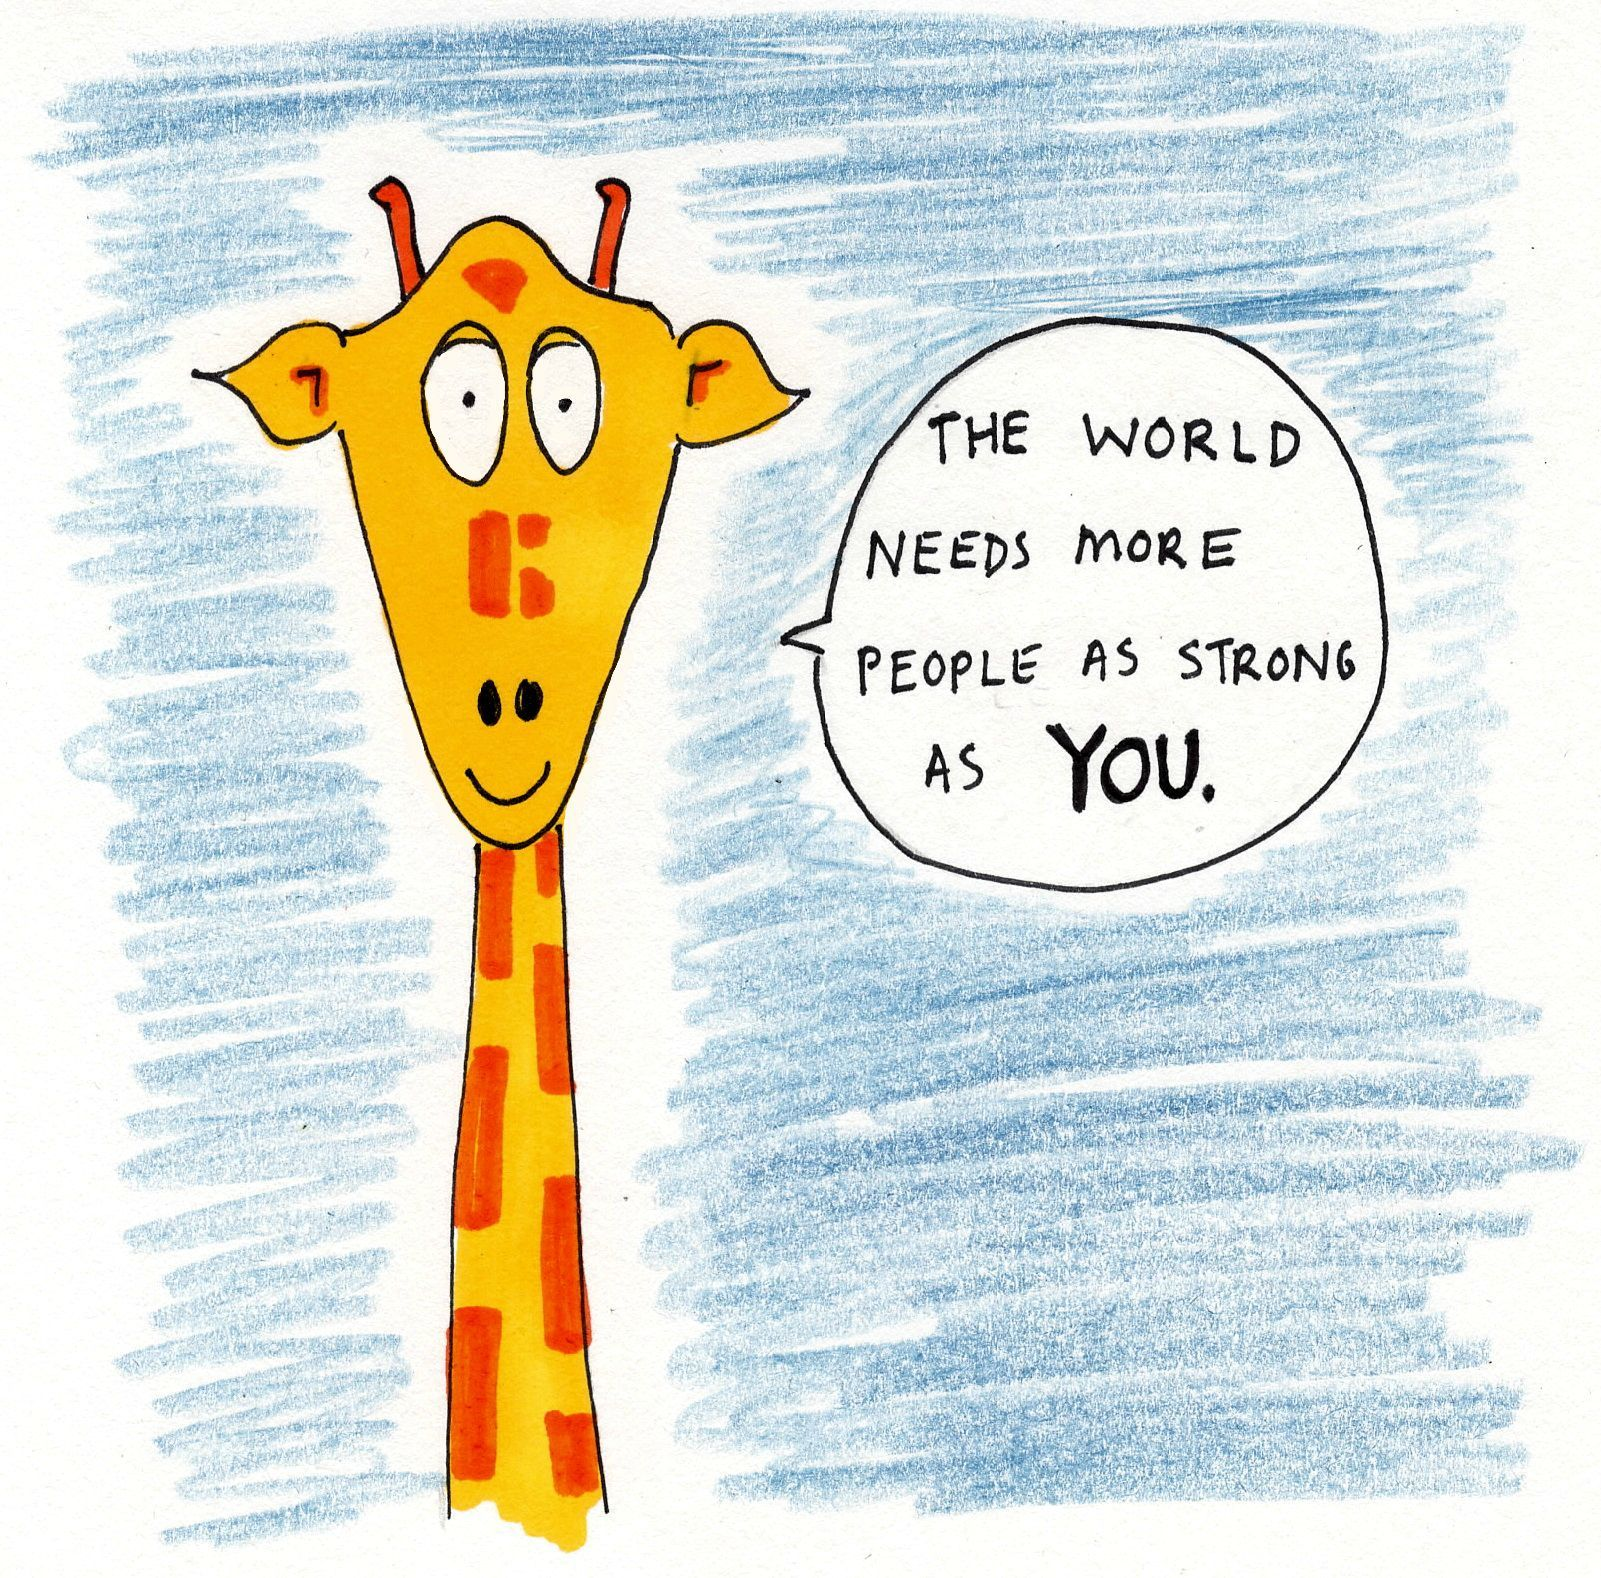 Giraffe Quotes: You Are Strong! Thanks Motivating Giraffe!